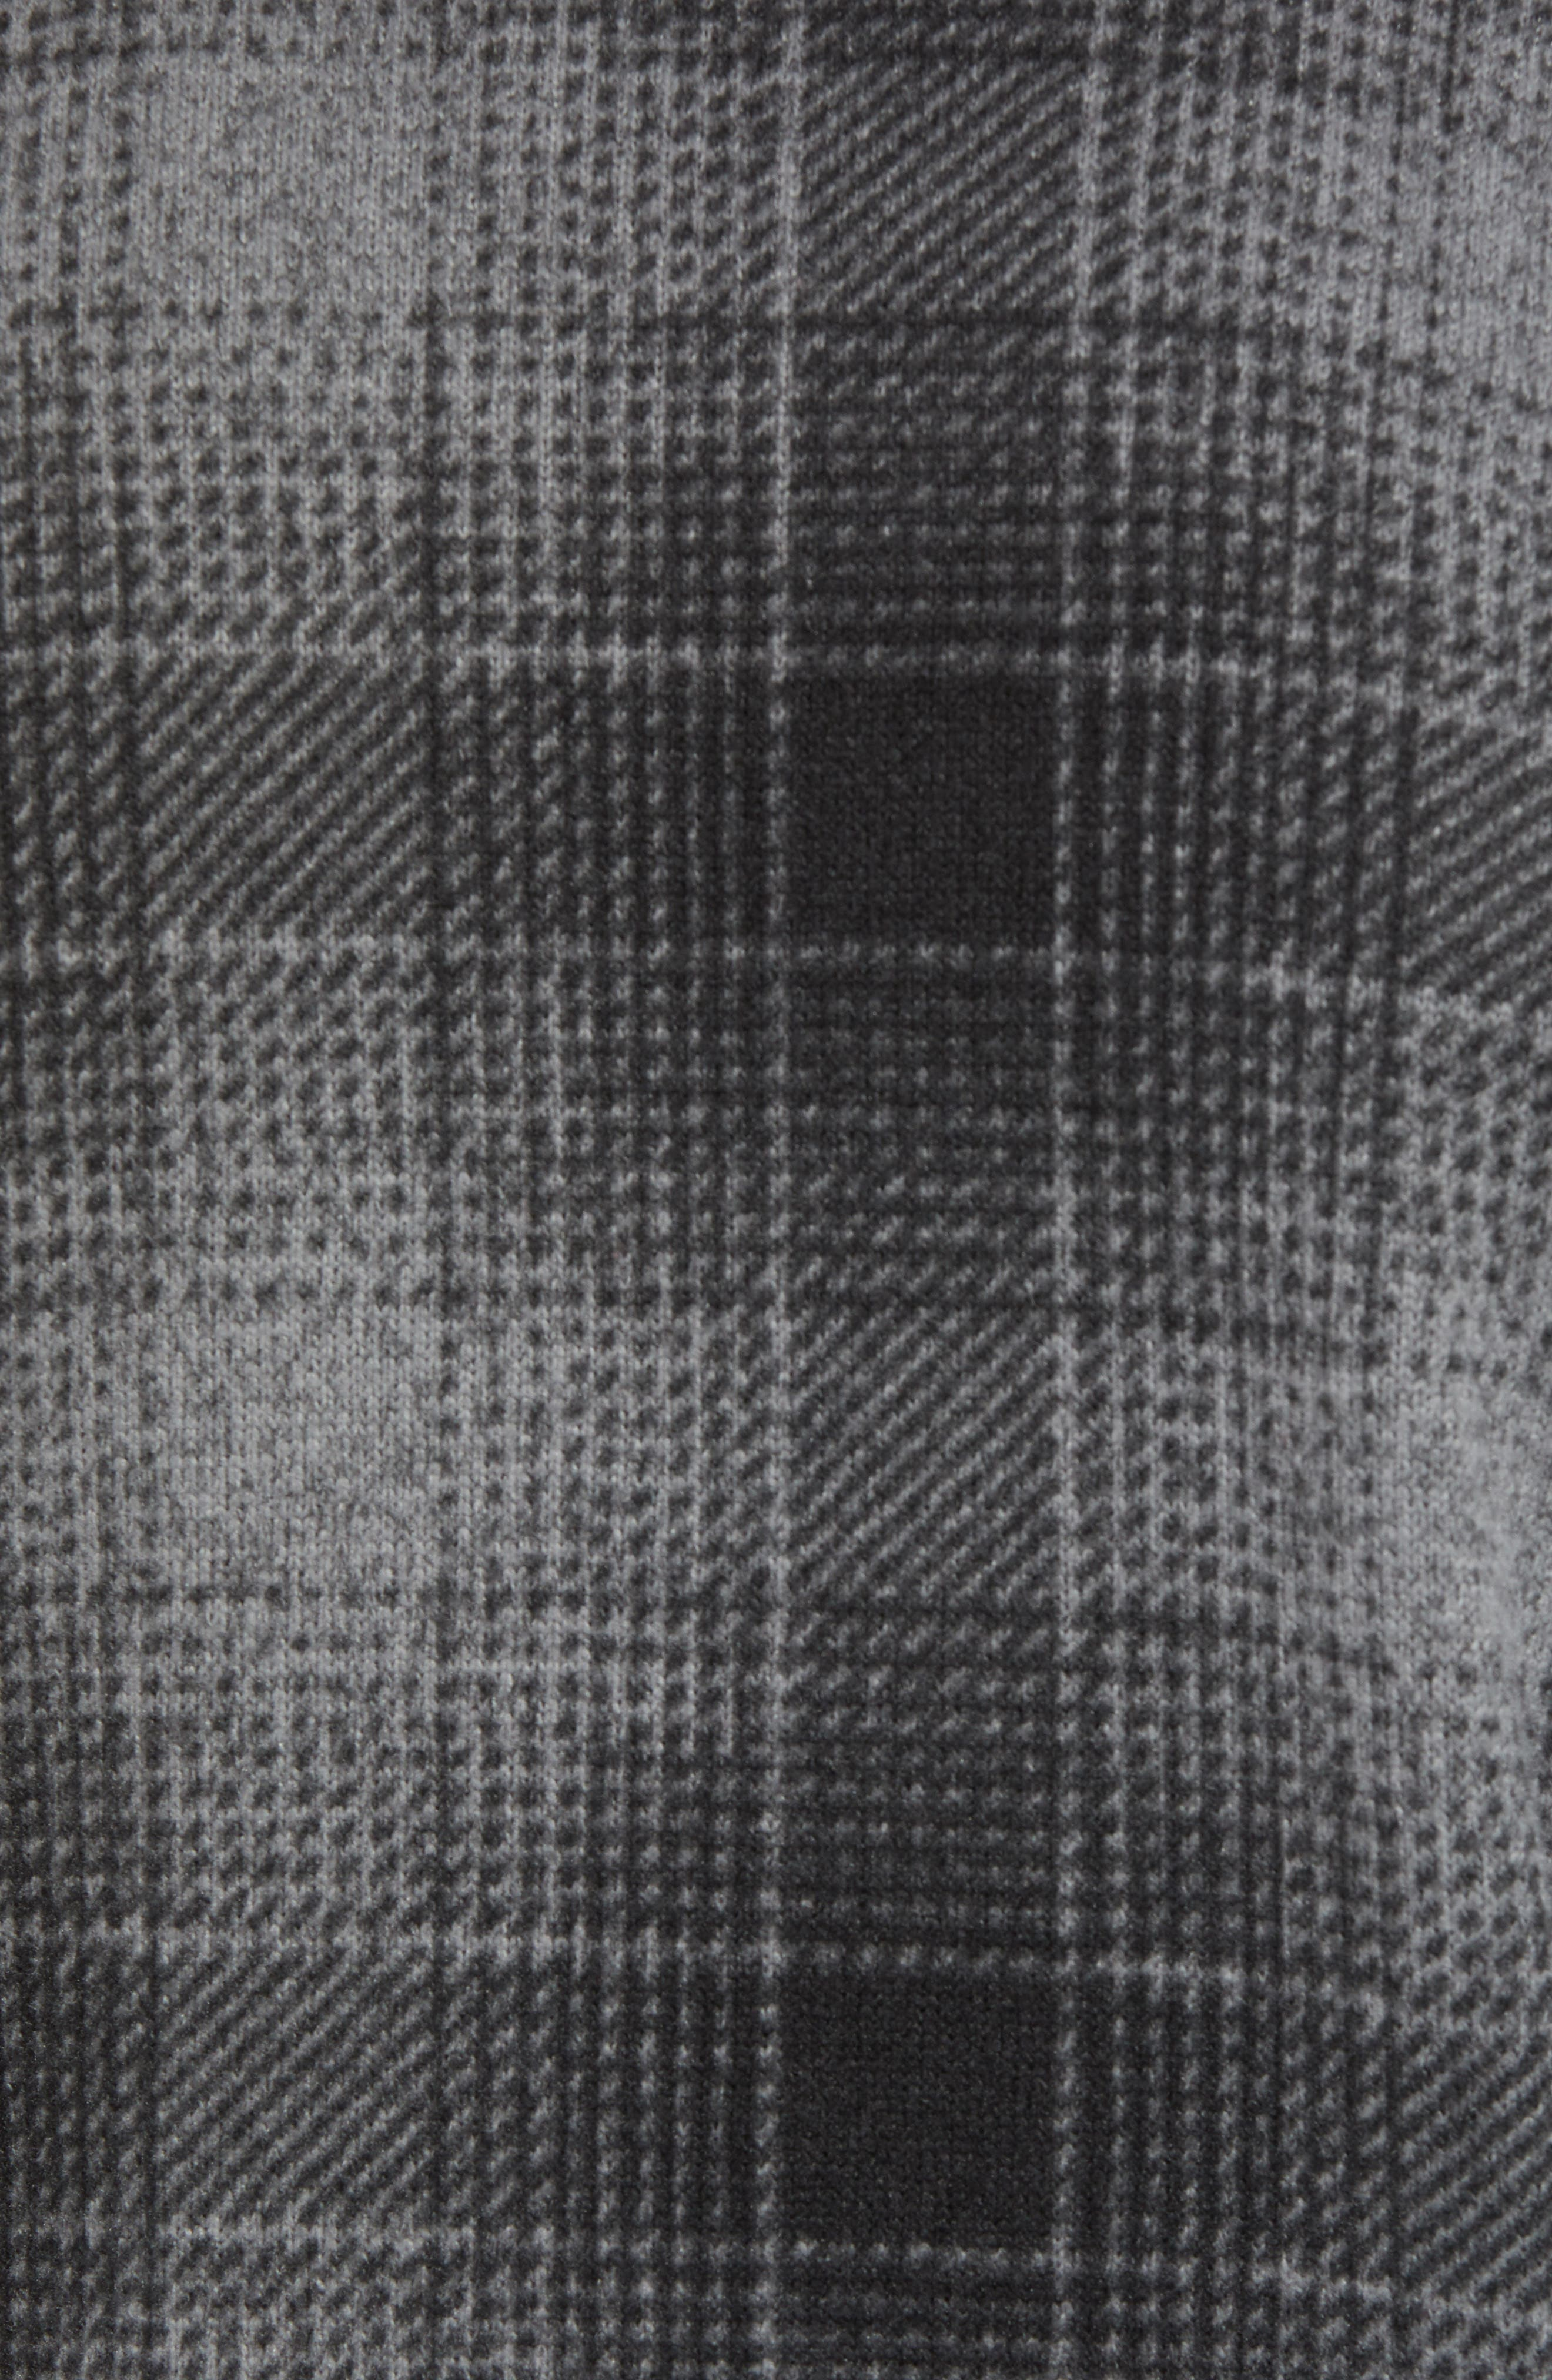 Novelty Gordon Lyons Plaid Pullover,                             Alternate thumbnail 5, color,                             MONUMENT GREY OMBRE PLAID